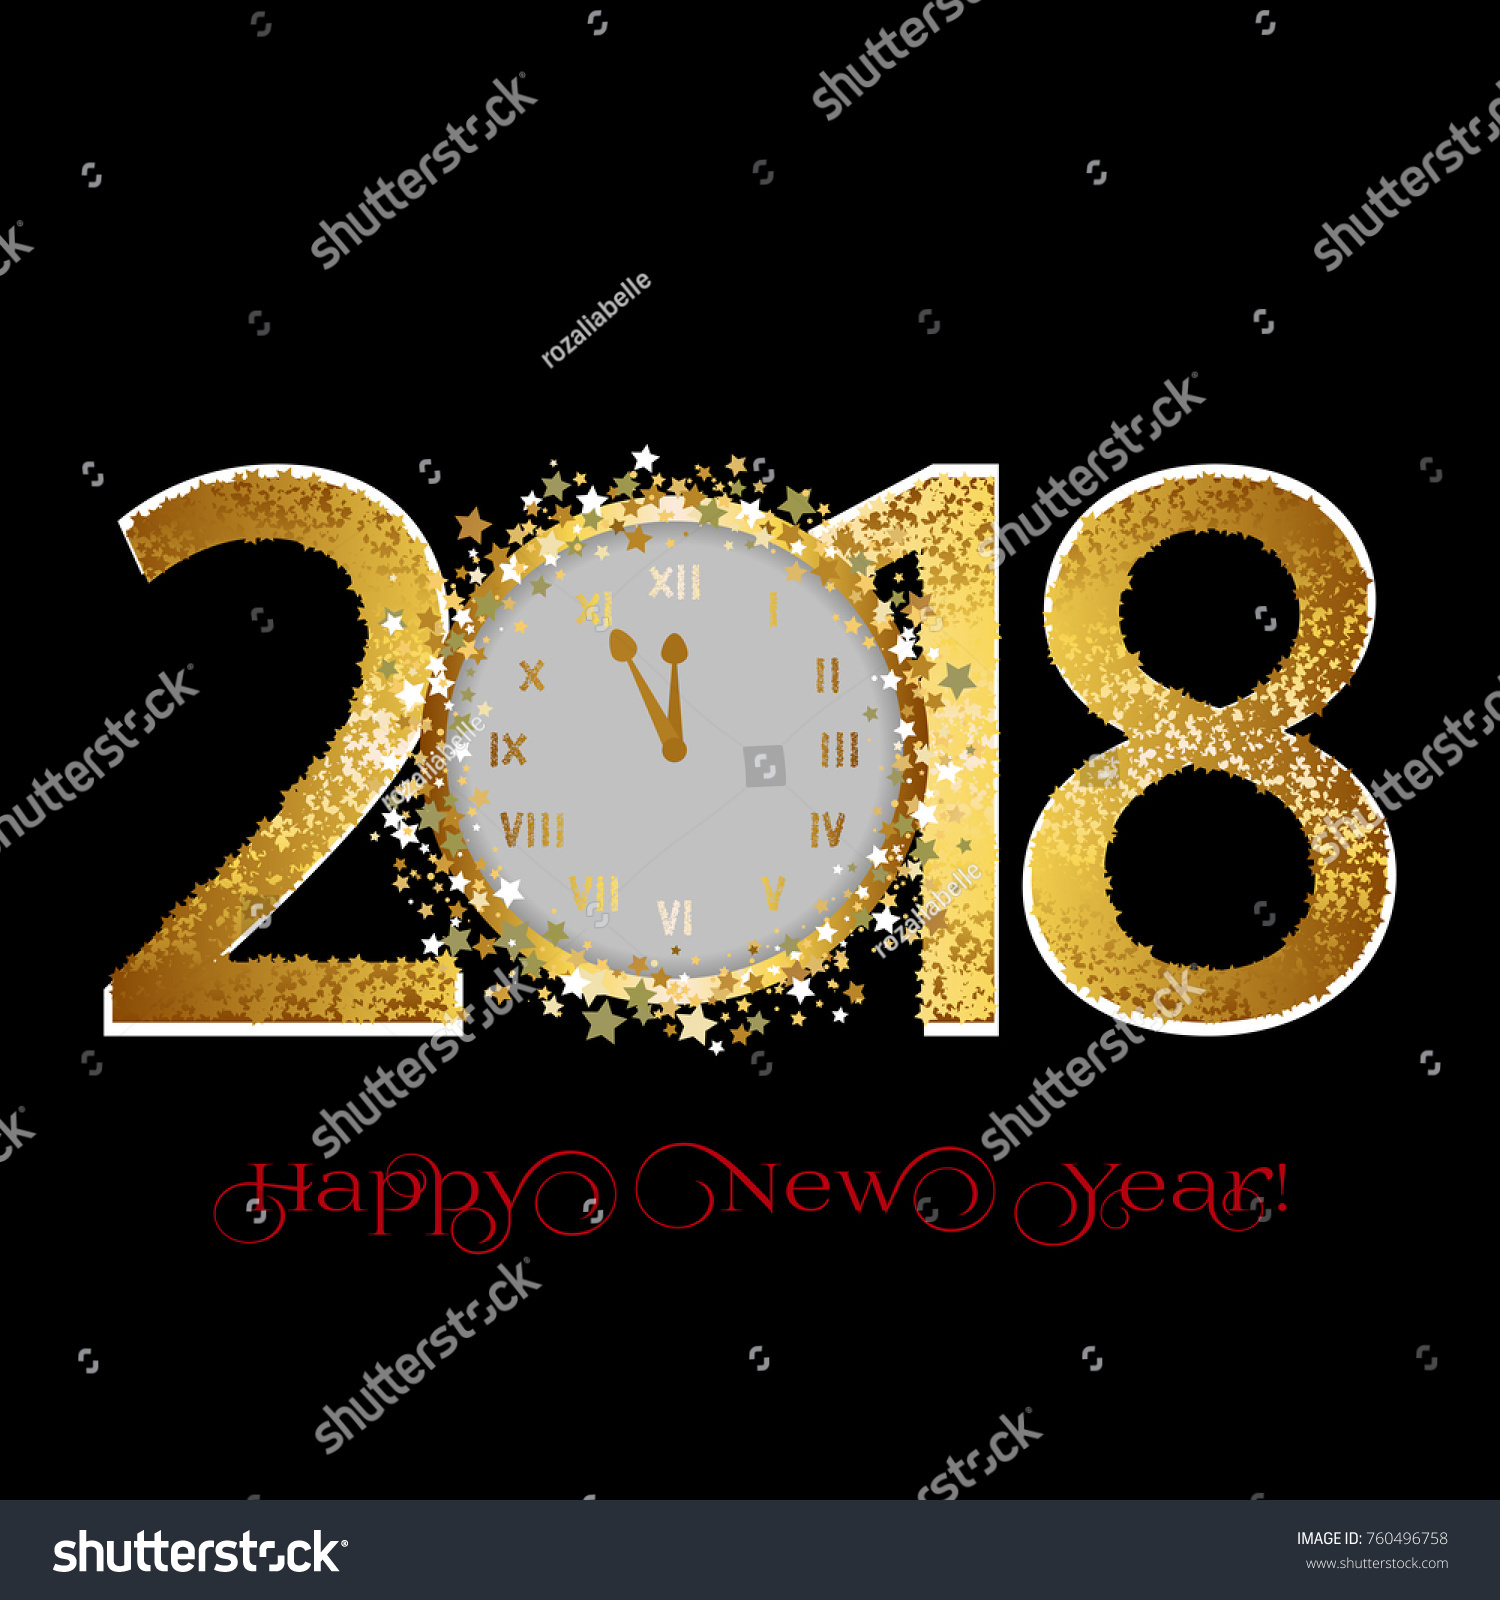 happy new year 2018 golden stars and clocks on a black background